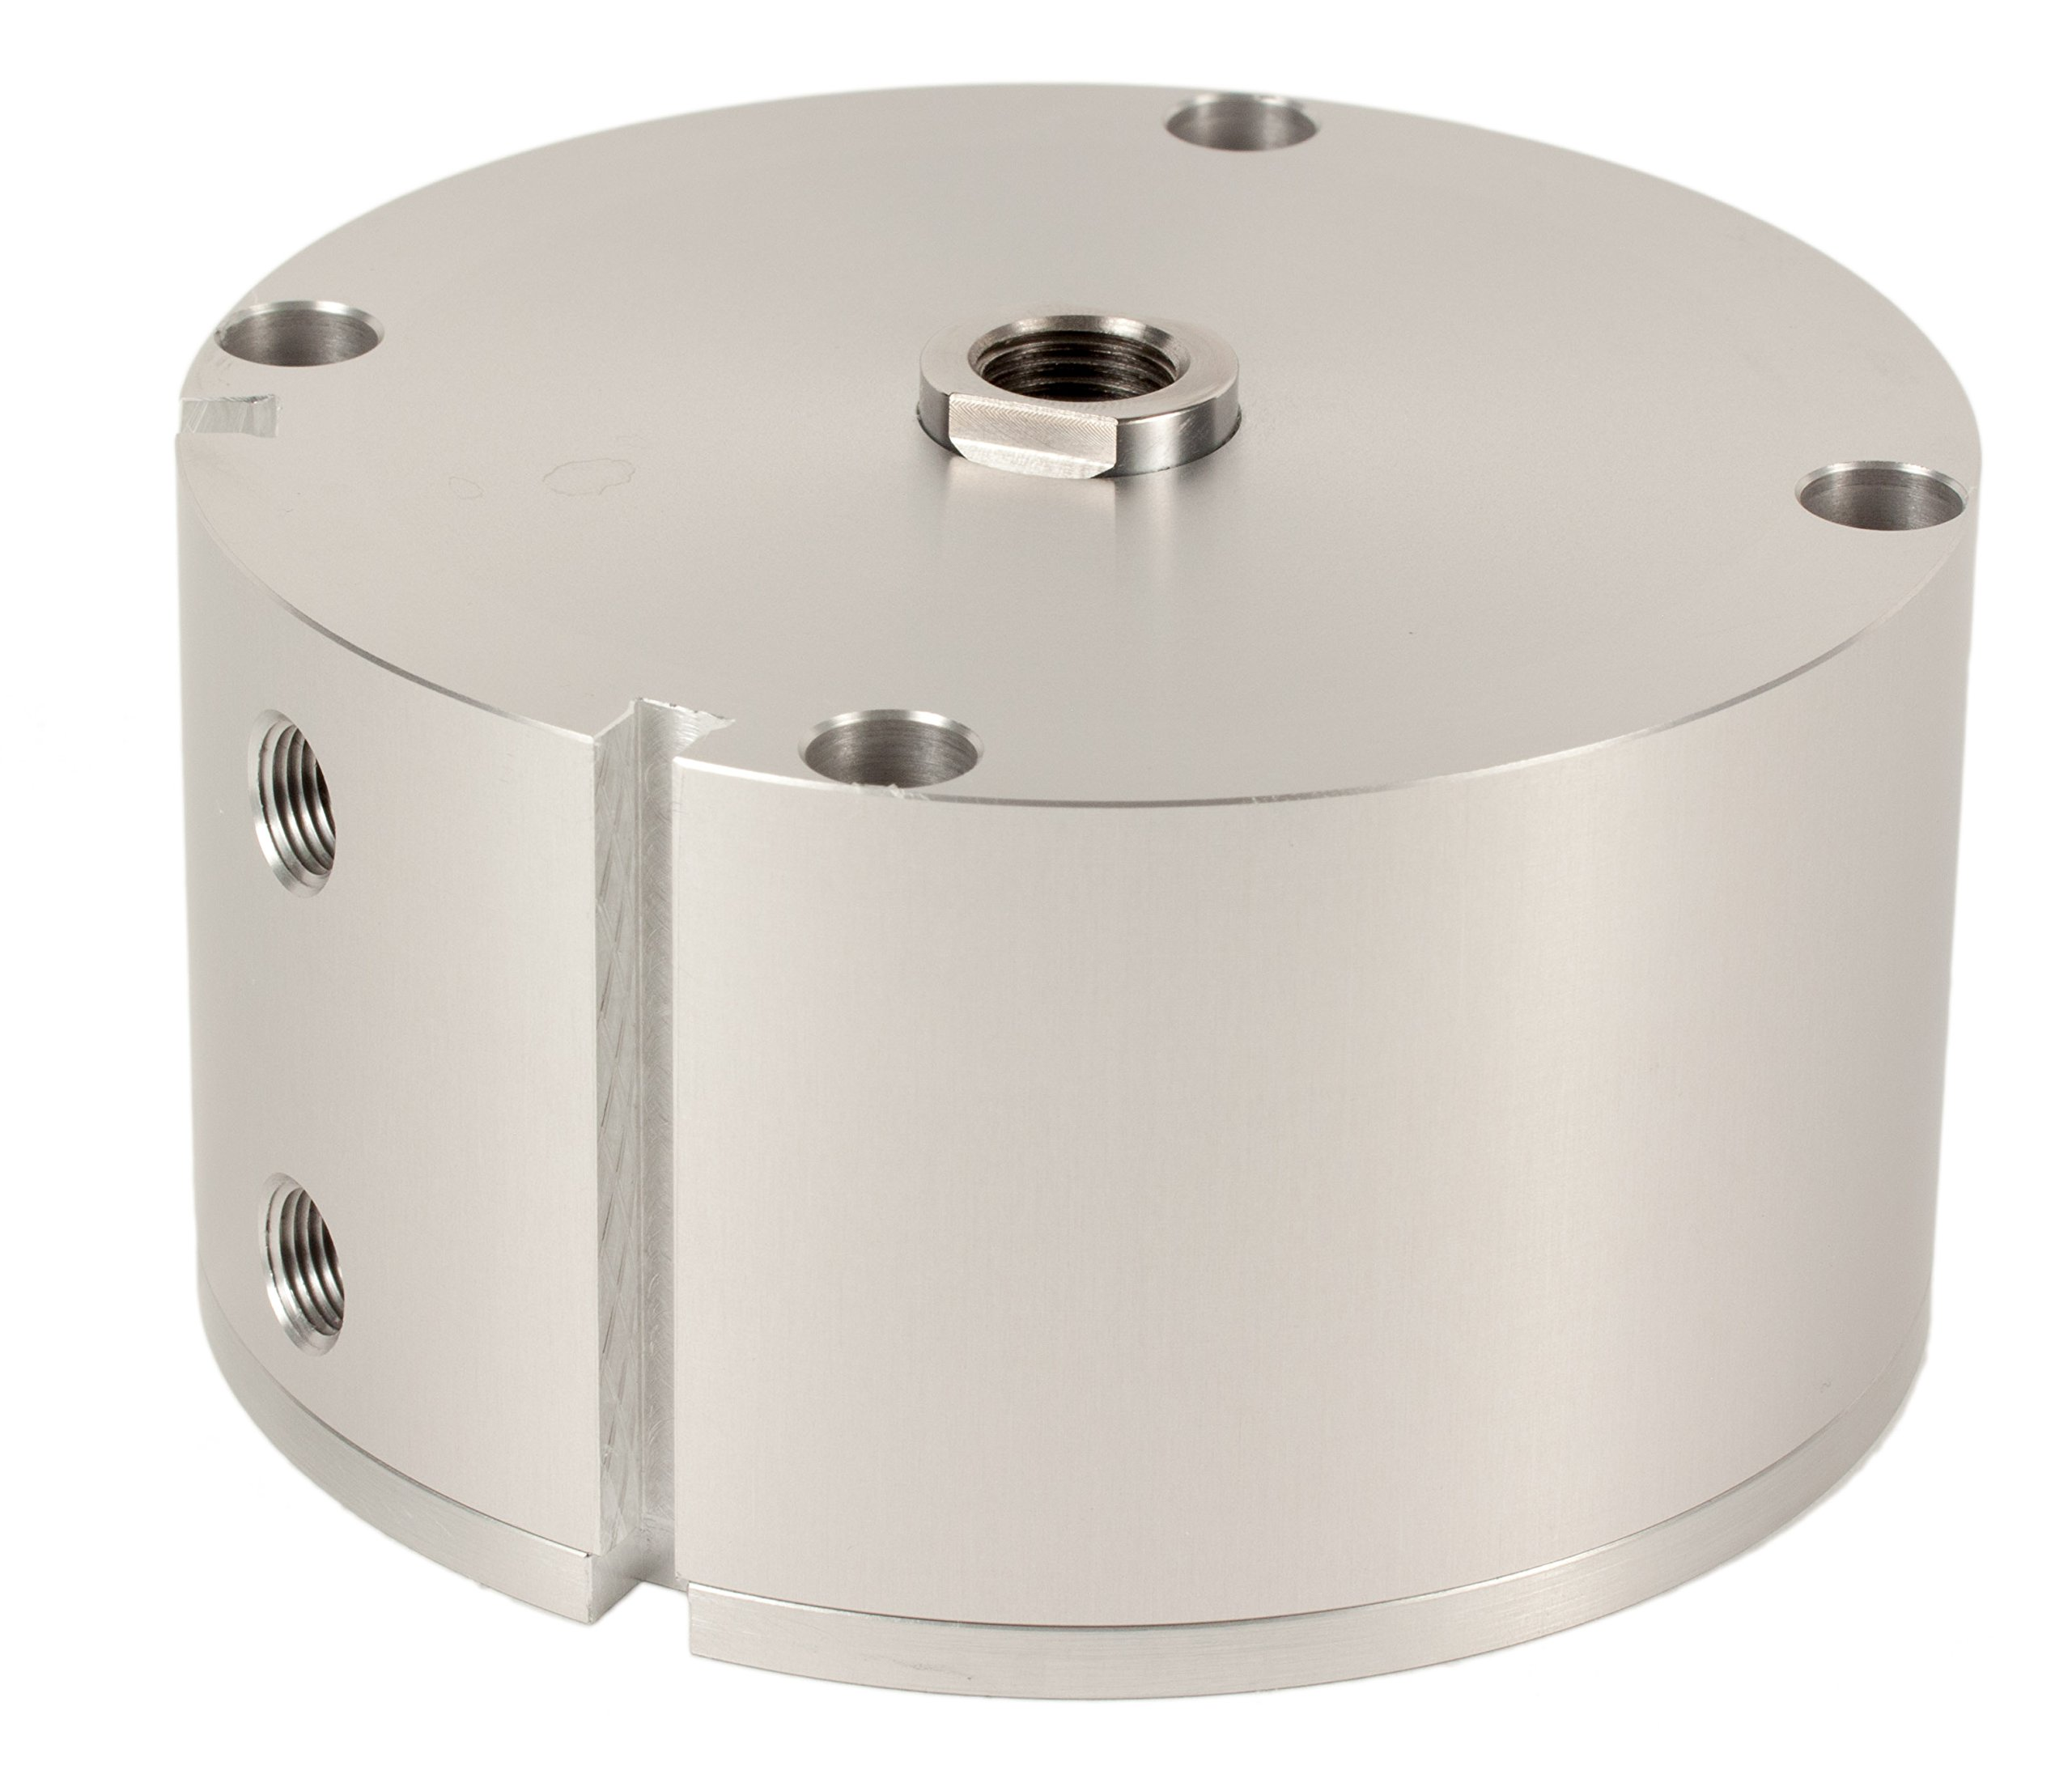 Fabco-Air C-721-X-E Original Pancake Cylinder, Double Acting, Maximum Pressure of 250 PSI, Switch Ready with Magnet, 3'' Bore Diameter x 1'' Stroke